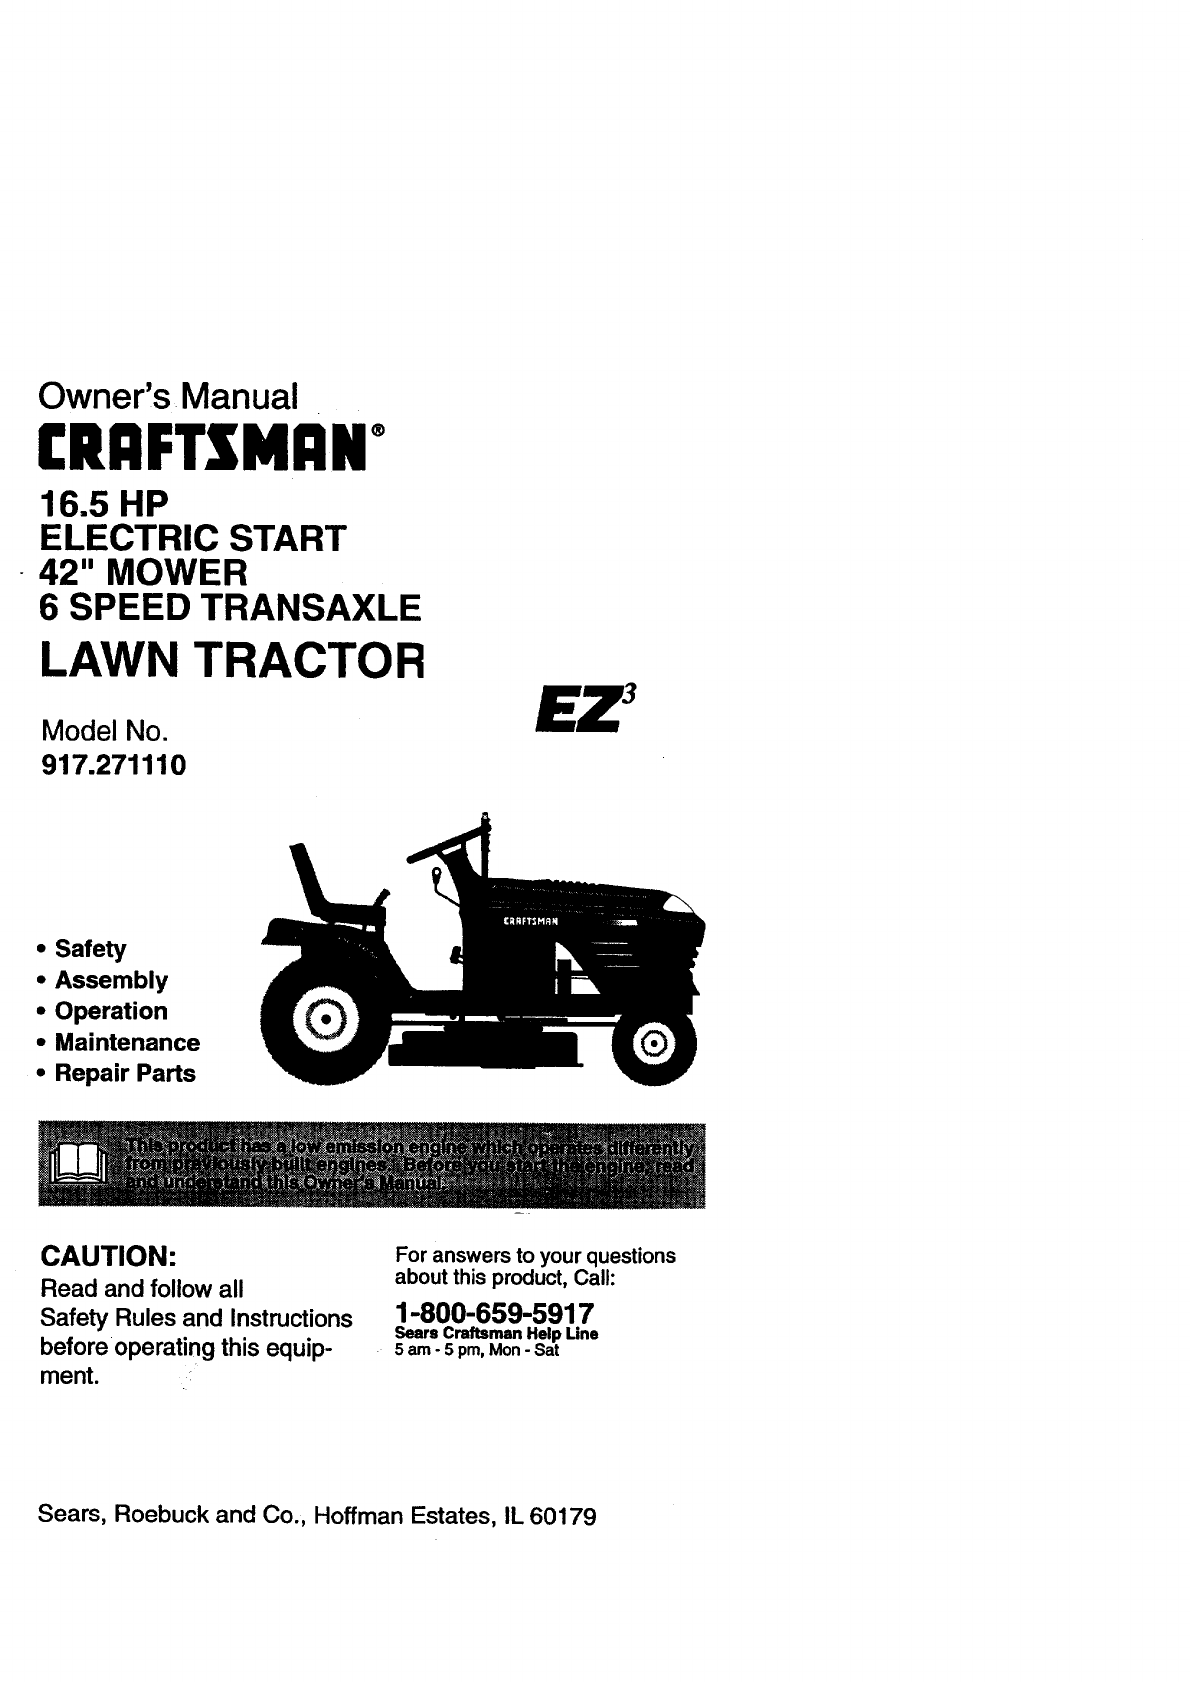 7a737f57 67af 49c5 a541 079cbf11b29b bg1 craftsman lawn mower 917 271110 user guide manualsonline com craftsman lawn tractor wiring schematic at edmiracle.co